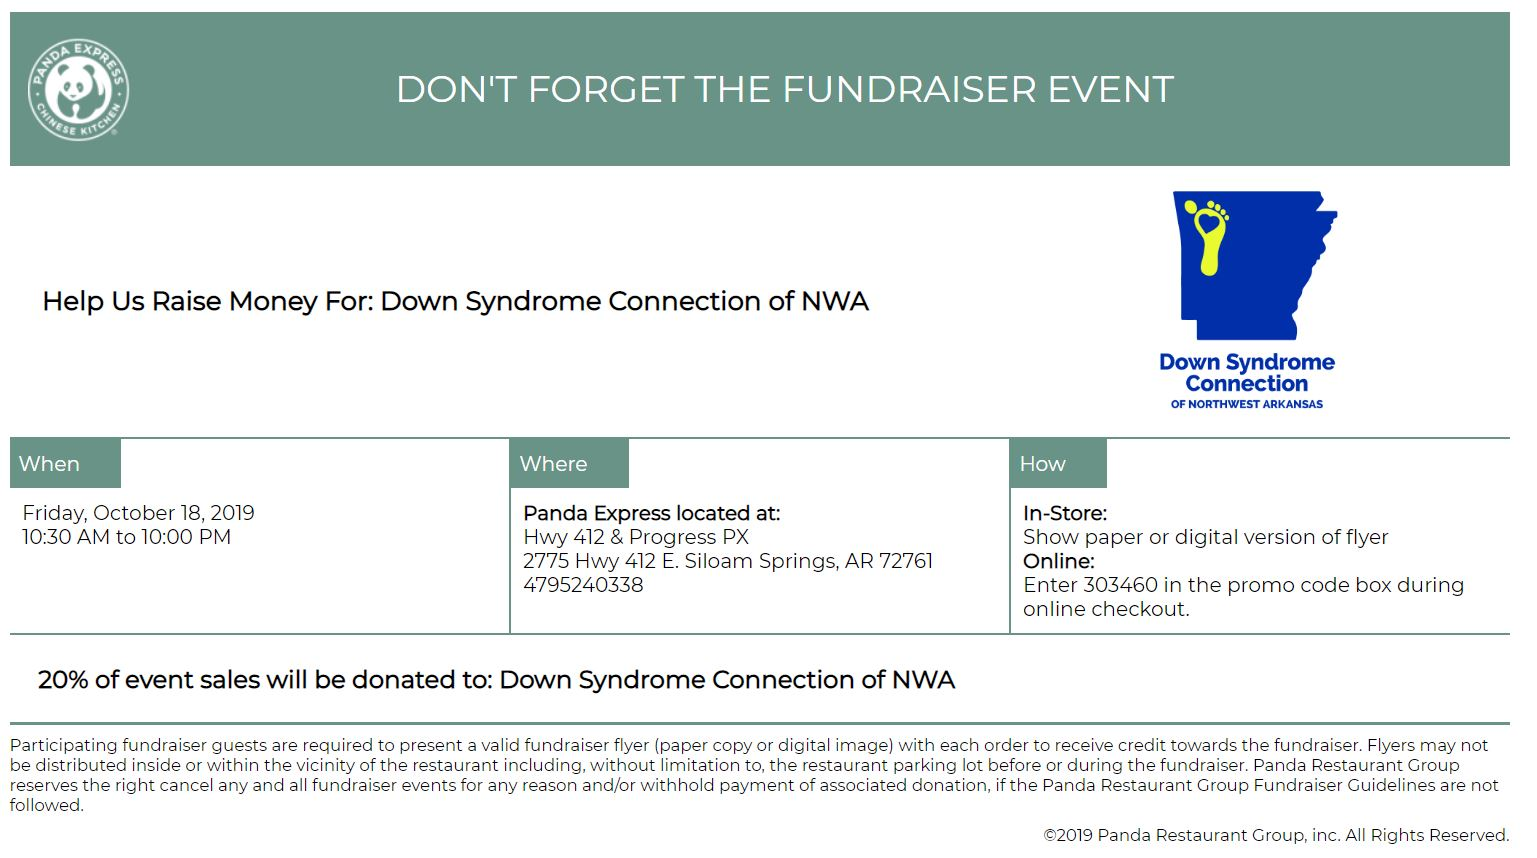 Dine Our for Down Syndrome at Panda Express in Siloam Springs